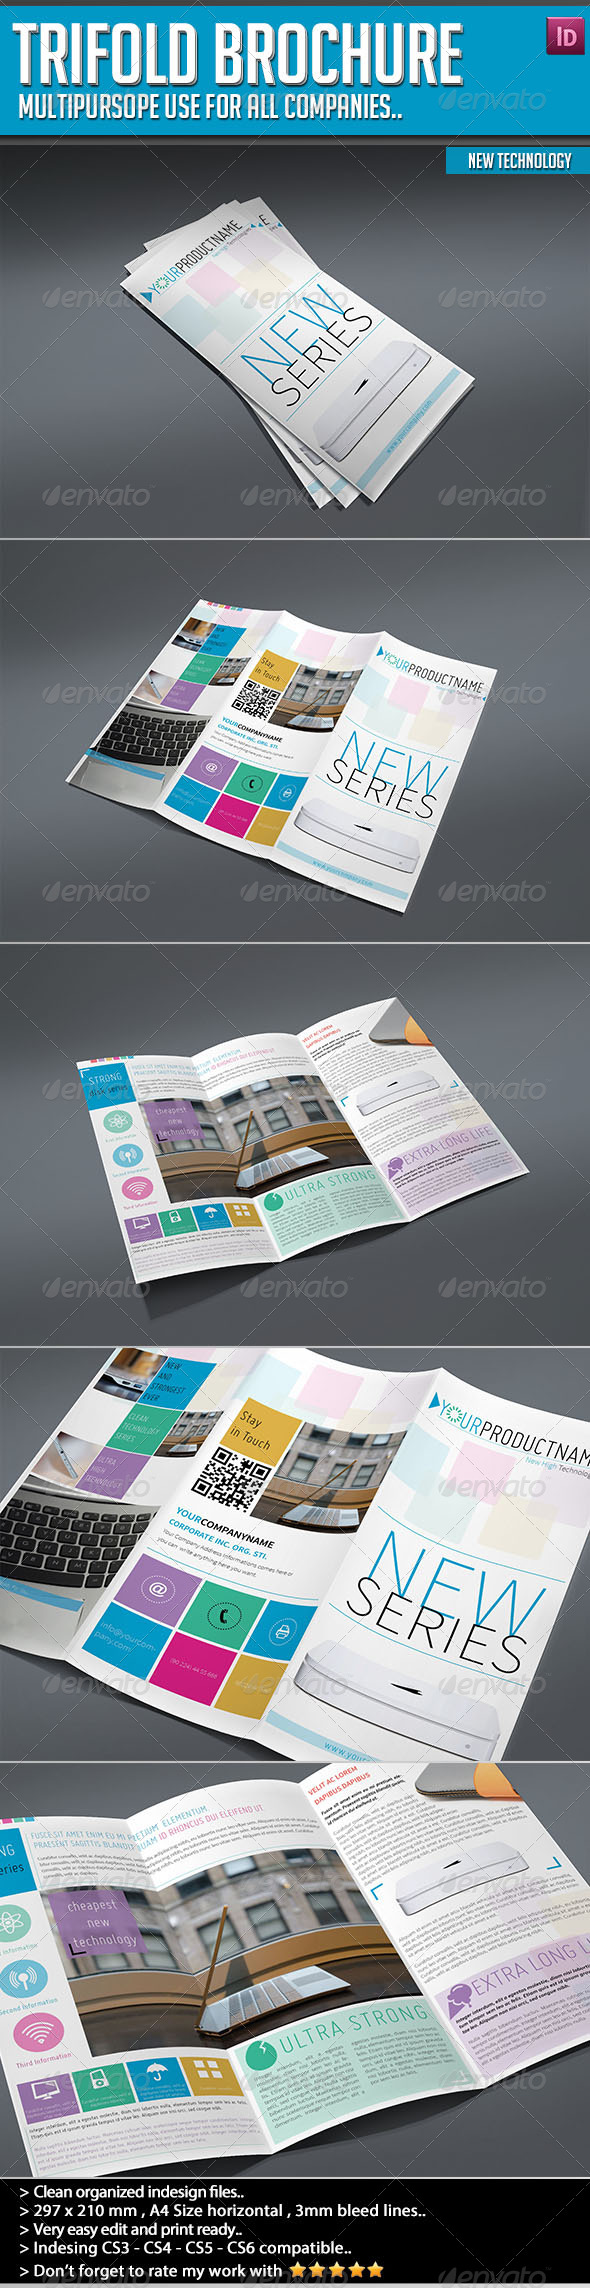 Trifold Brochure New Technology